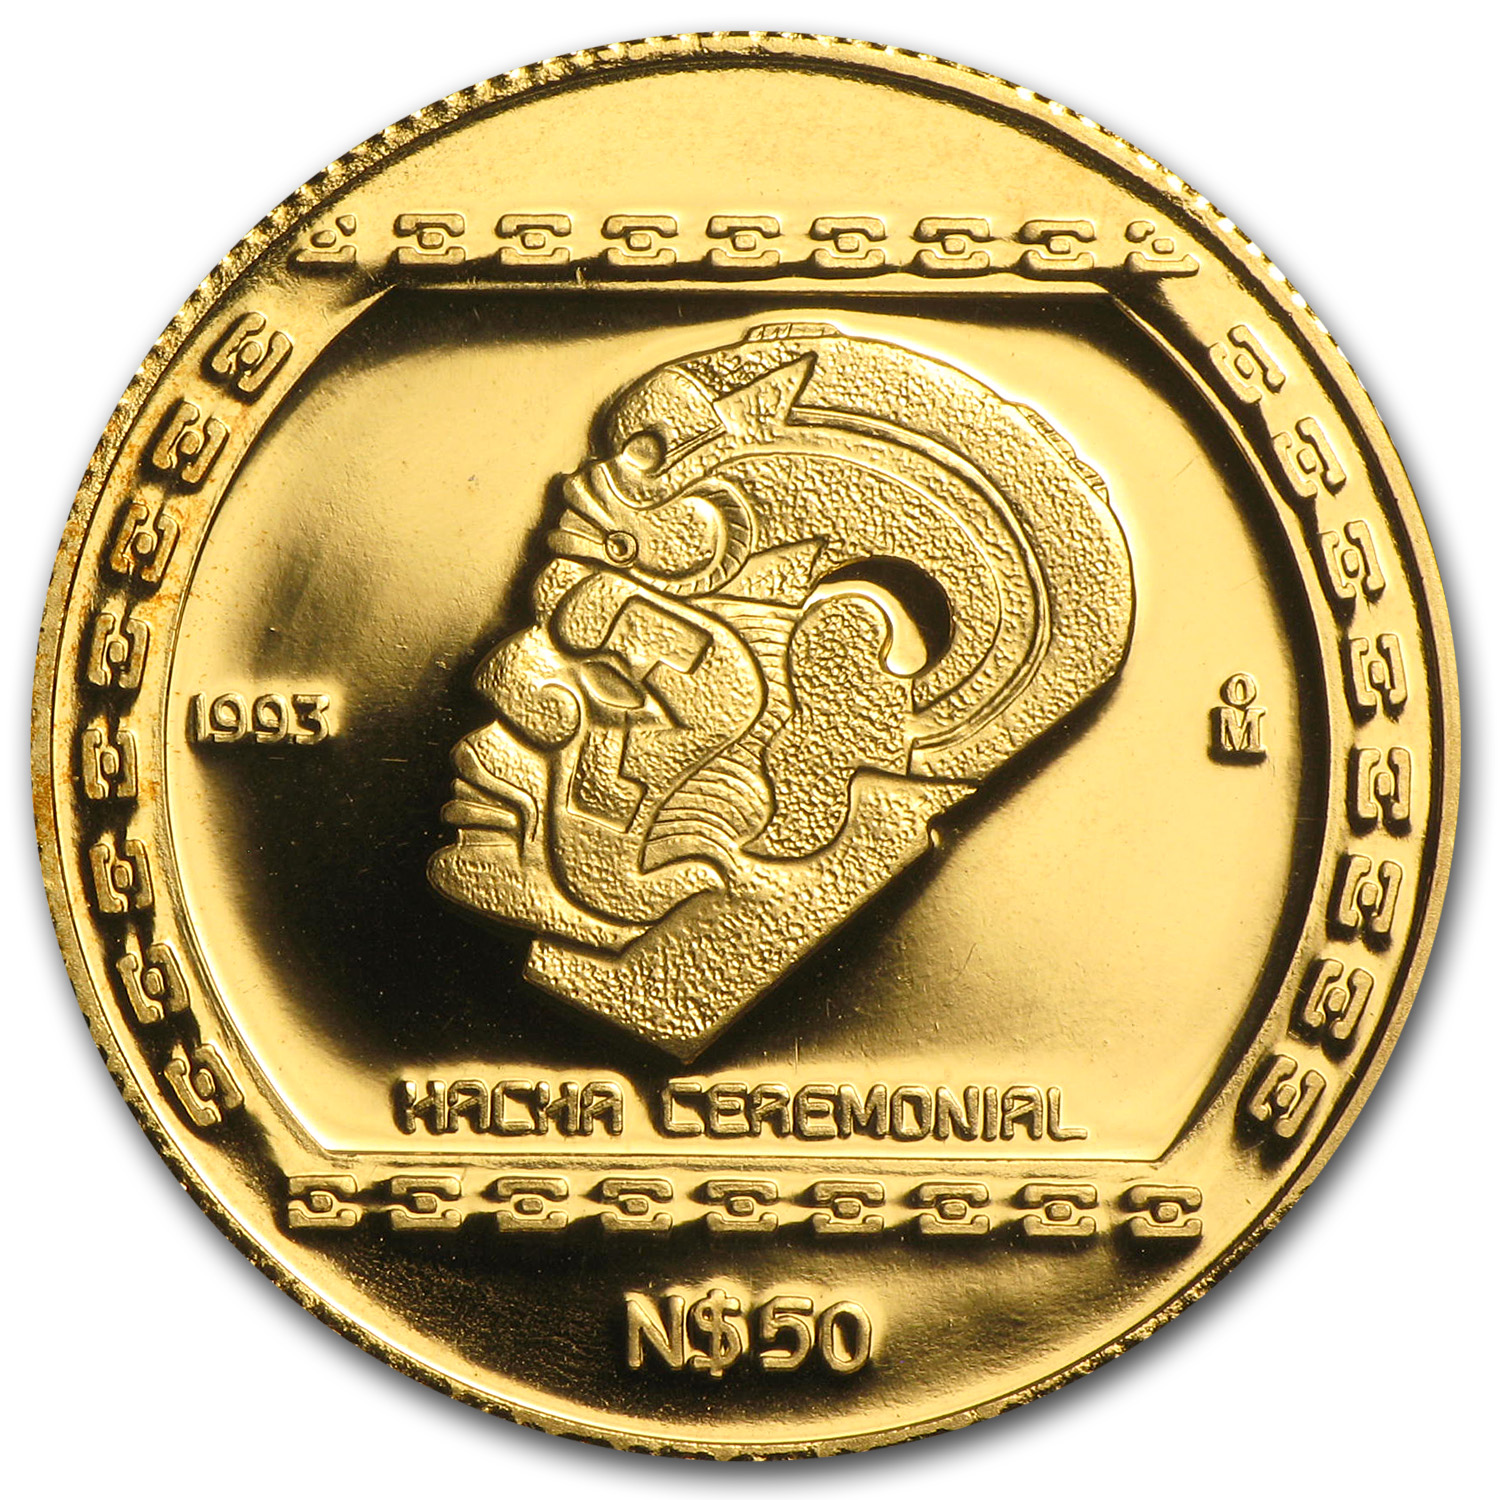 1993 Mexico 50 Pesos Gold Proof Hacha Ceremonial